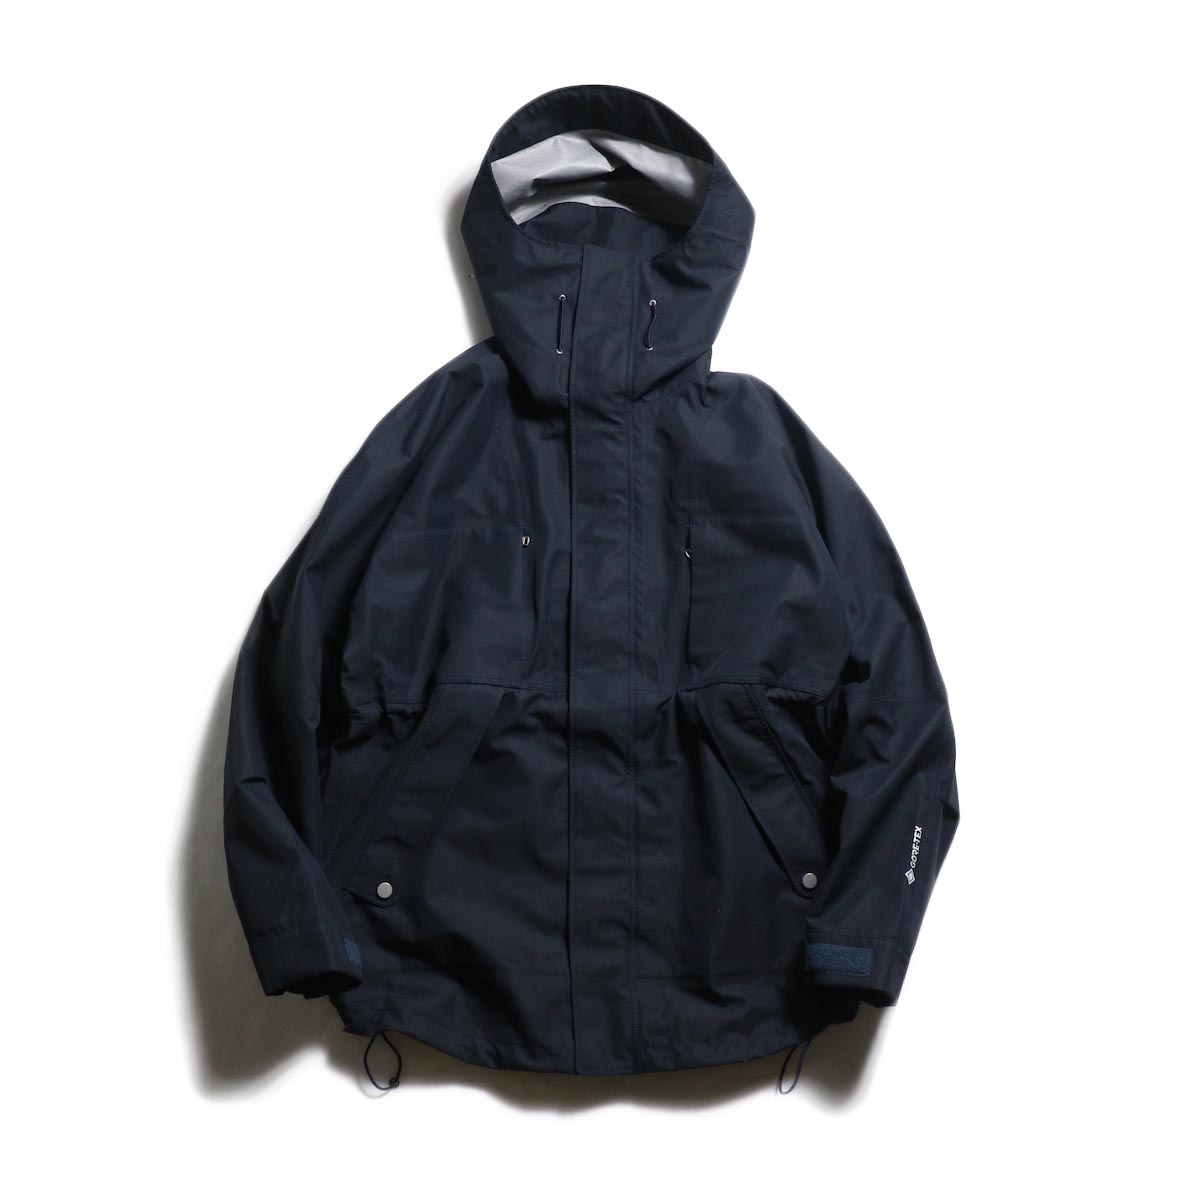 nonnative / HIKER HOODED JACKET POLY PIQUE WITH GORE-TEX® 3L (Navy)